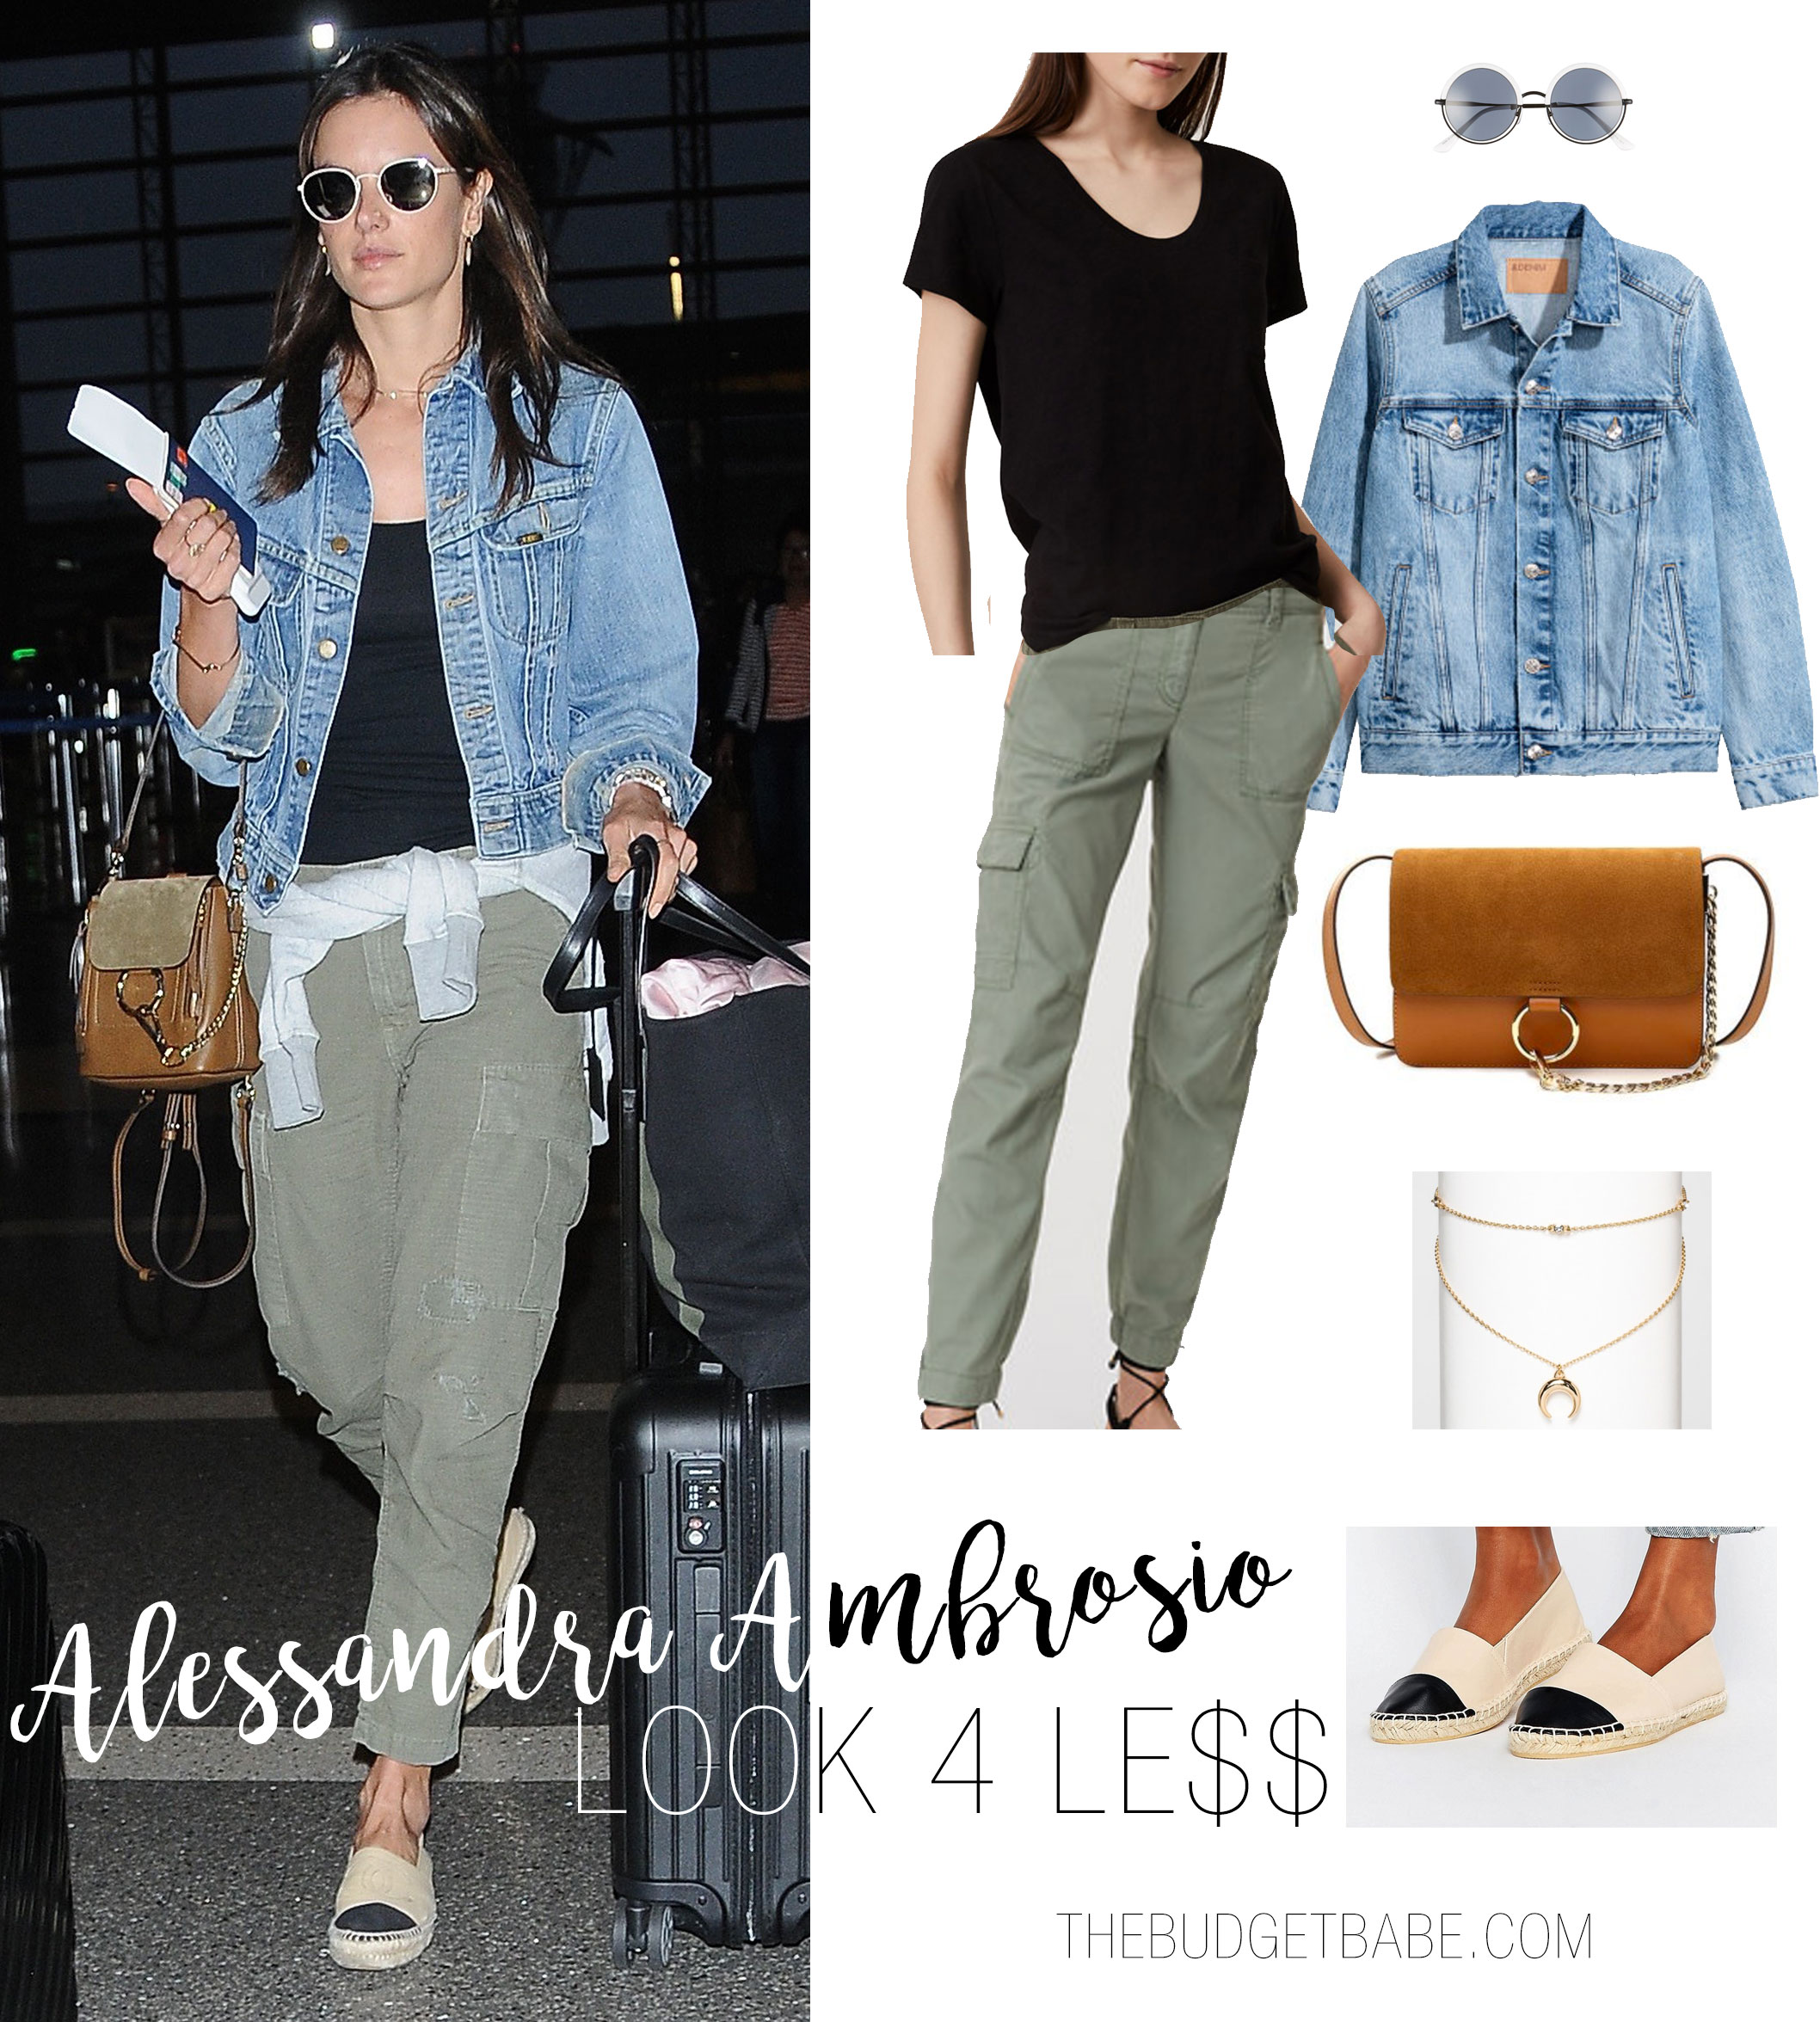 Alessandra Ambrosio's airport style is casual and cool, with a black tee, olive cargos and denim jacket.